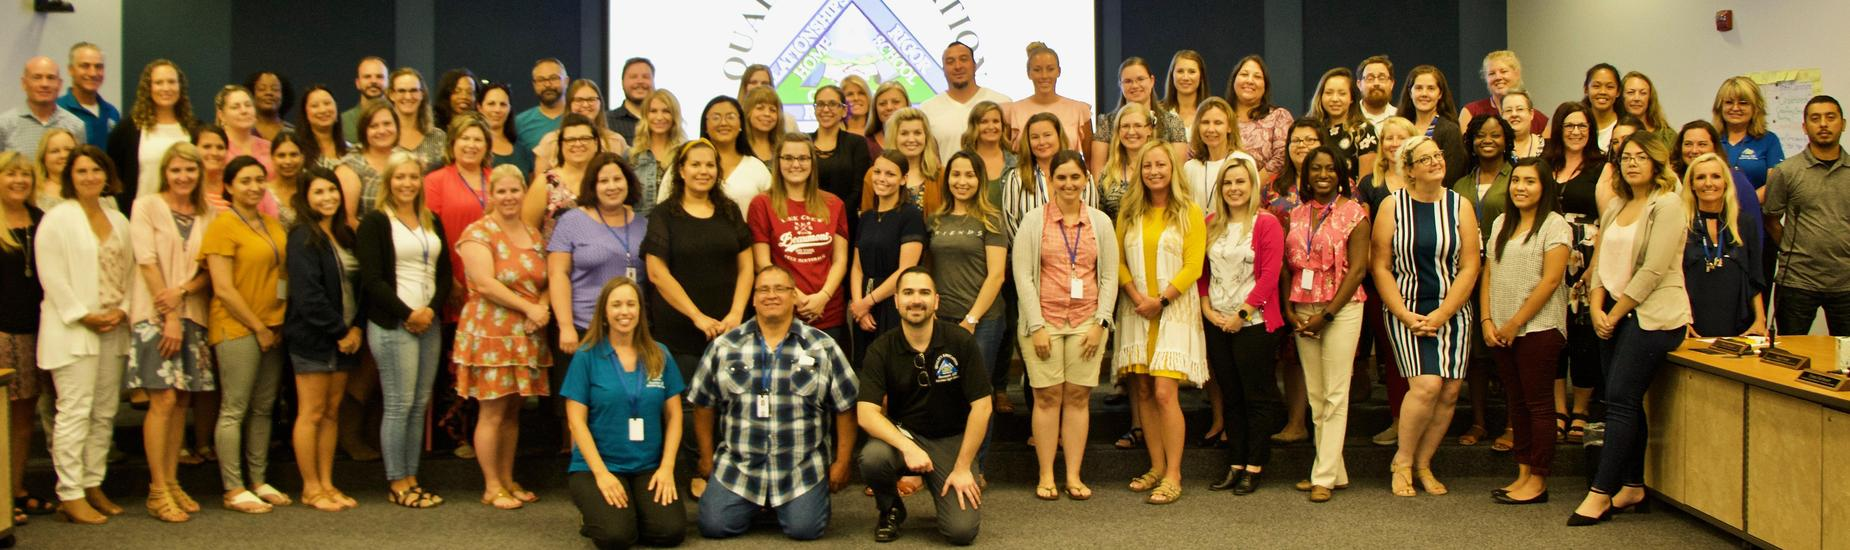 Welcome New Teachers to the Beaumont USD Family!